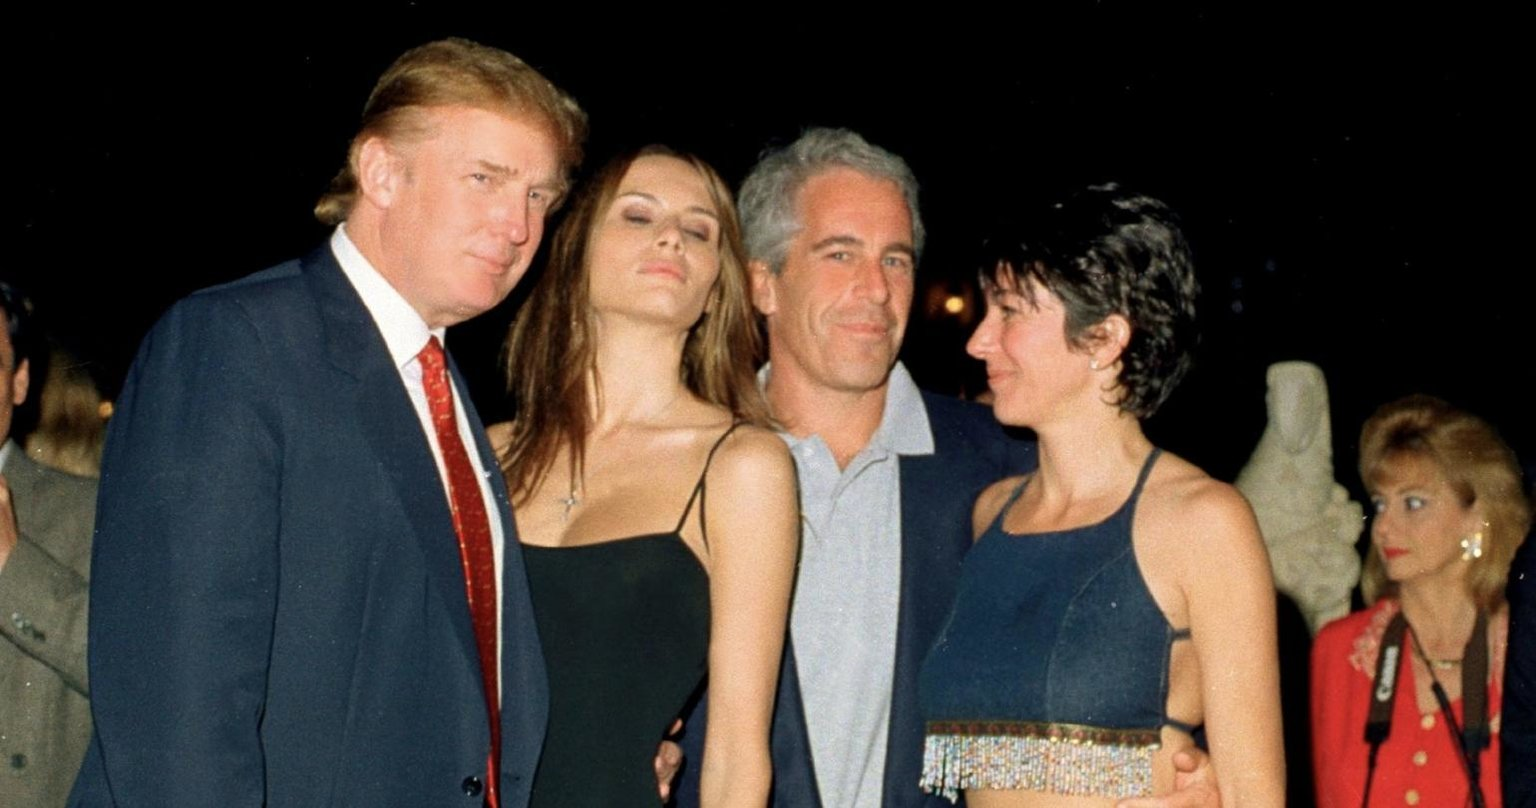 Future Prez poses with Slovenian woman and sex trafficker Jeffrey Epstein at Mar-a-Lago. Good times!